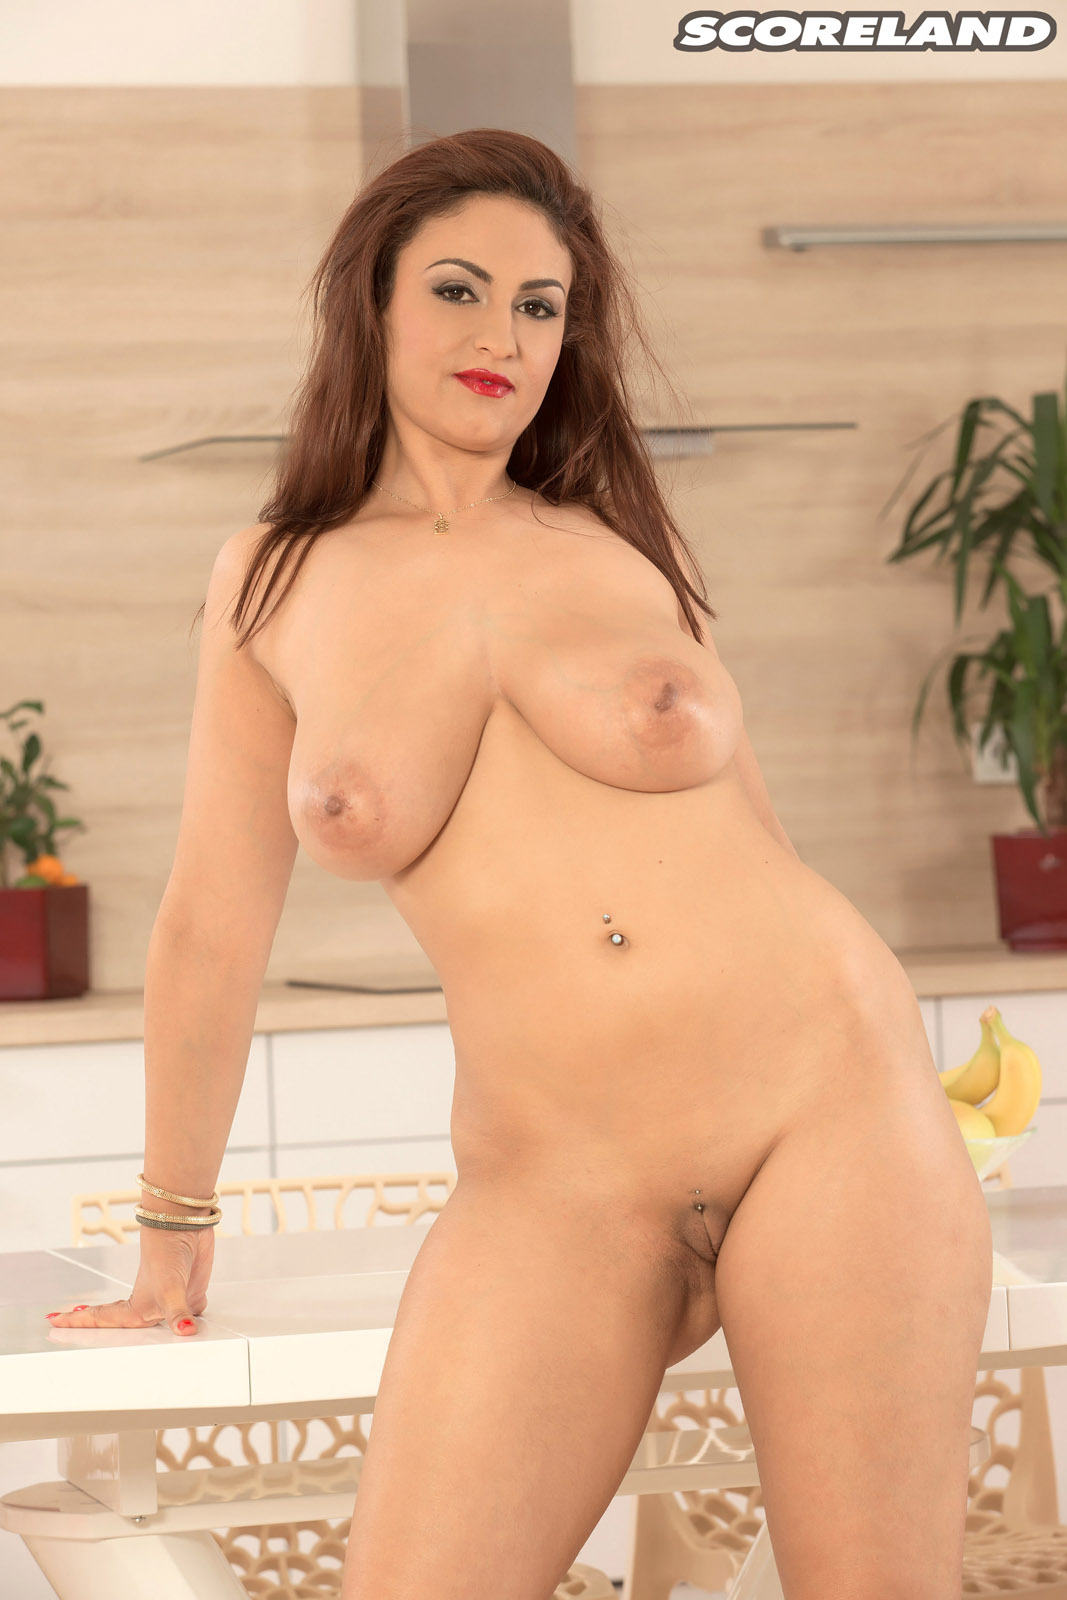 Sandra Milka Big Tits Of Spain Scoreland Foxhq